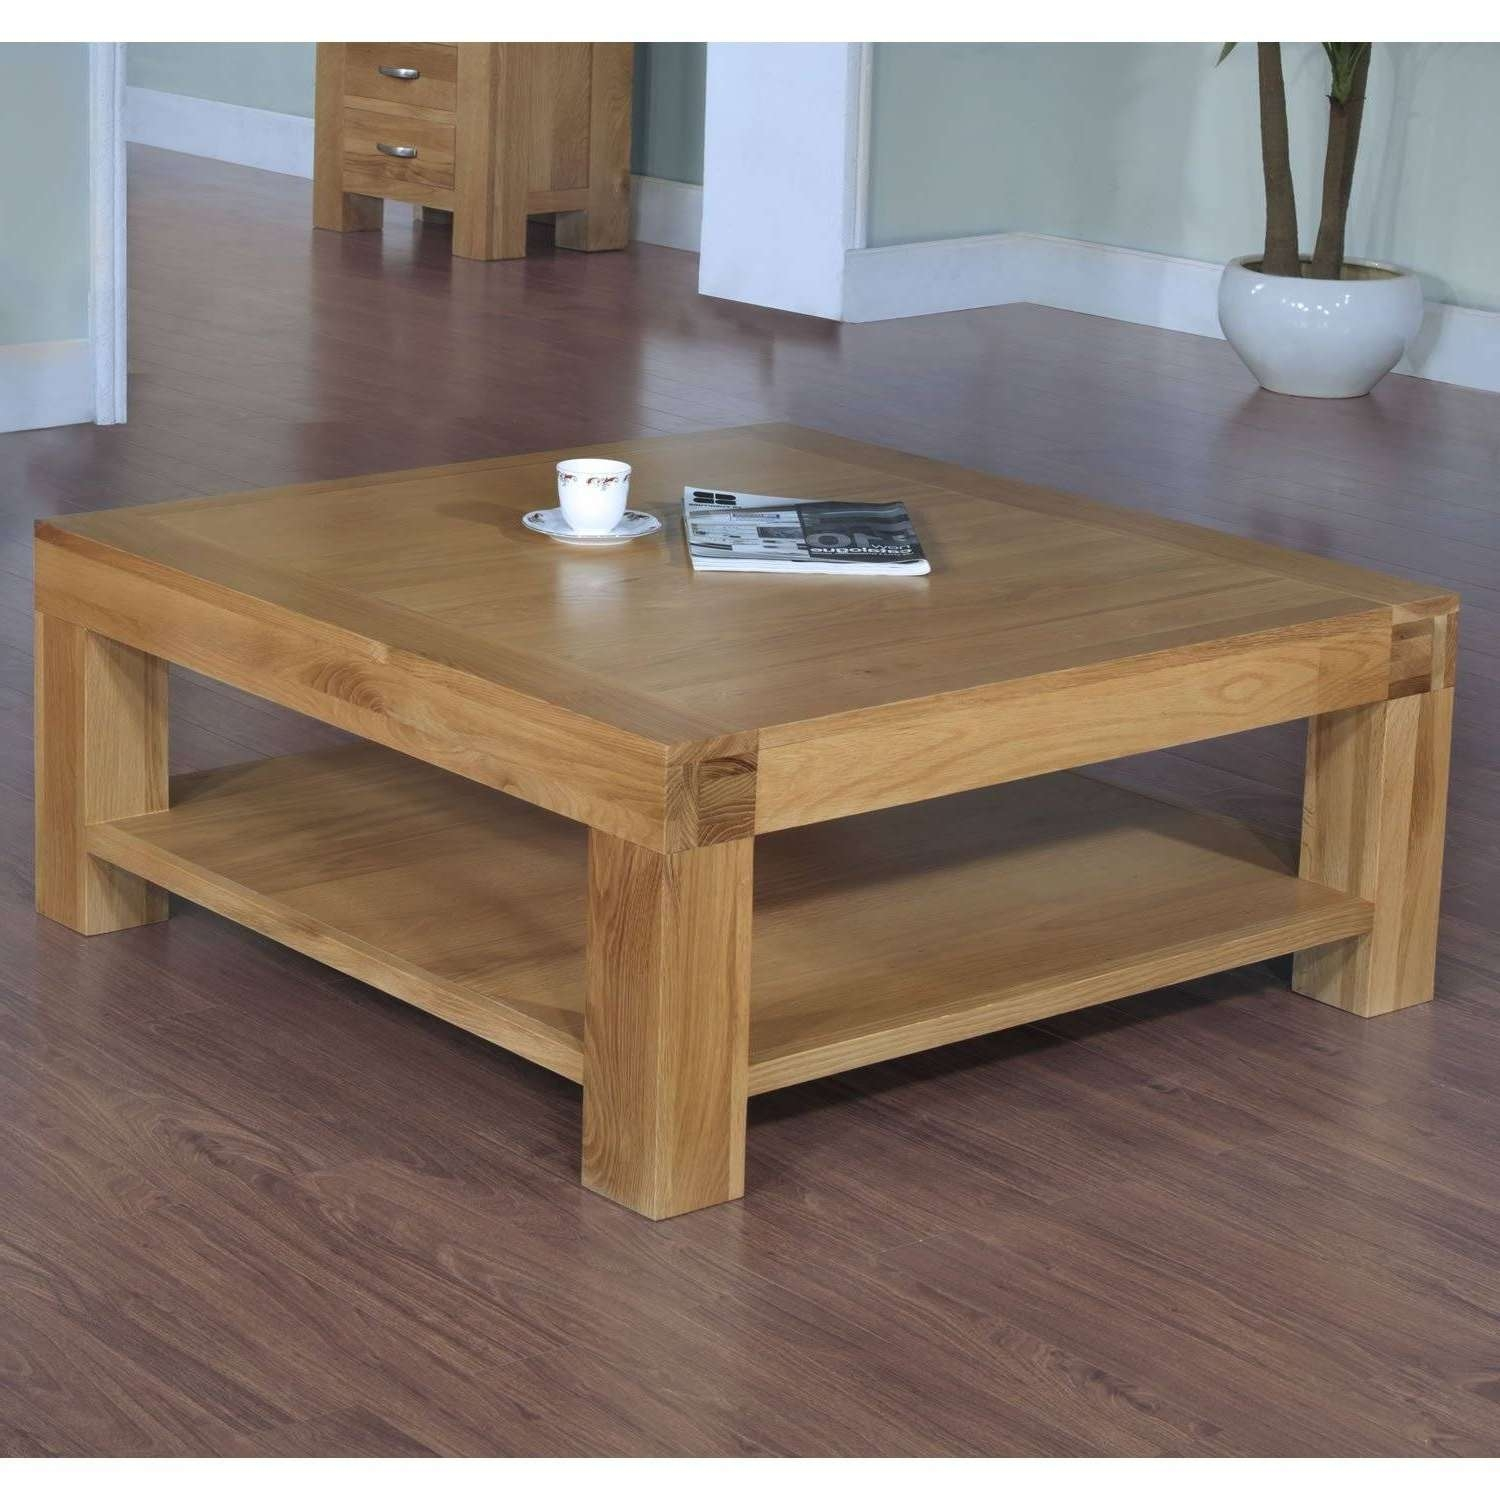 Square Glass And Oak Coffee Table: Krusin Square Coffee Table In Oak With Glass Top